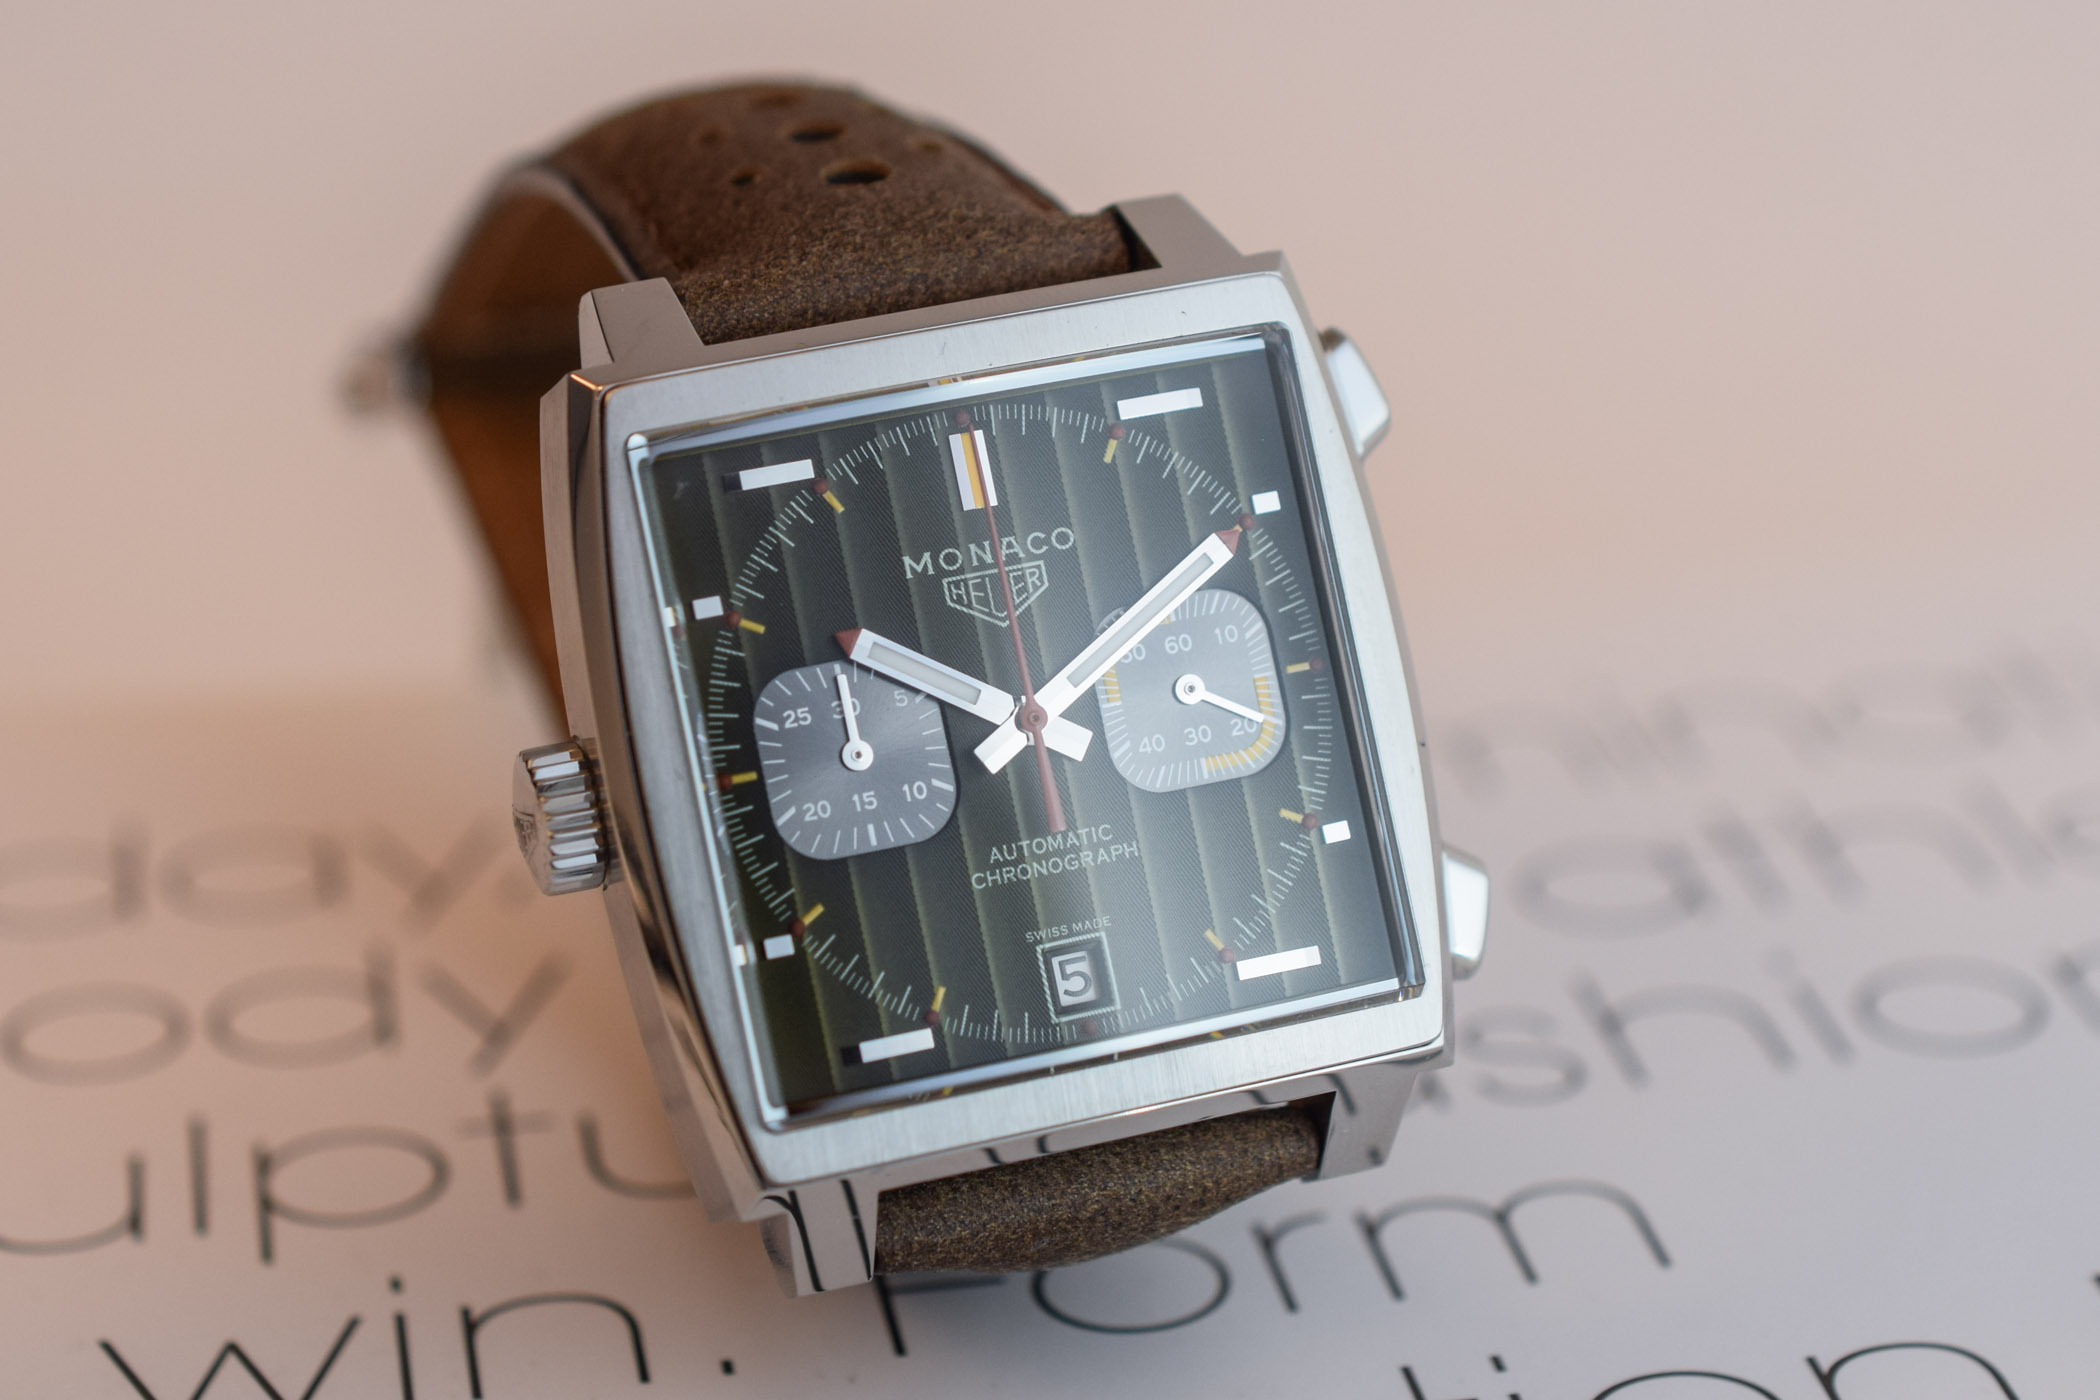 This Tag: TAG Heuer Monaco 1969-1979 Limited Edition 50th